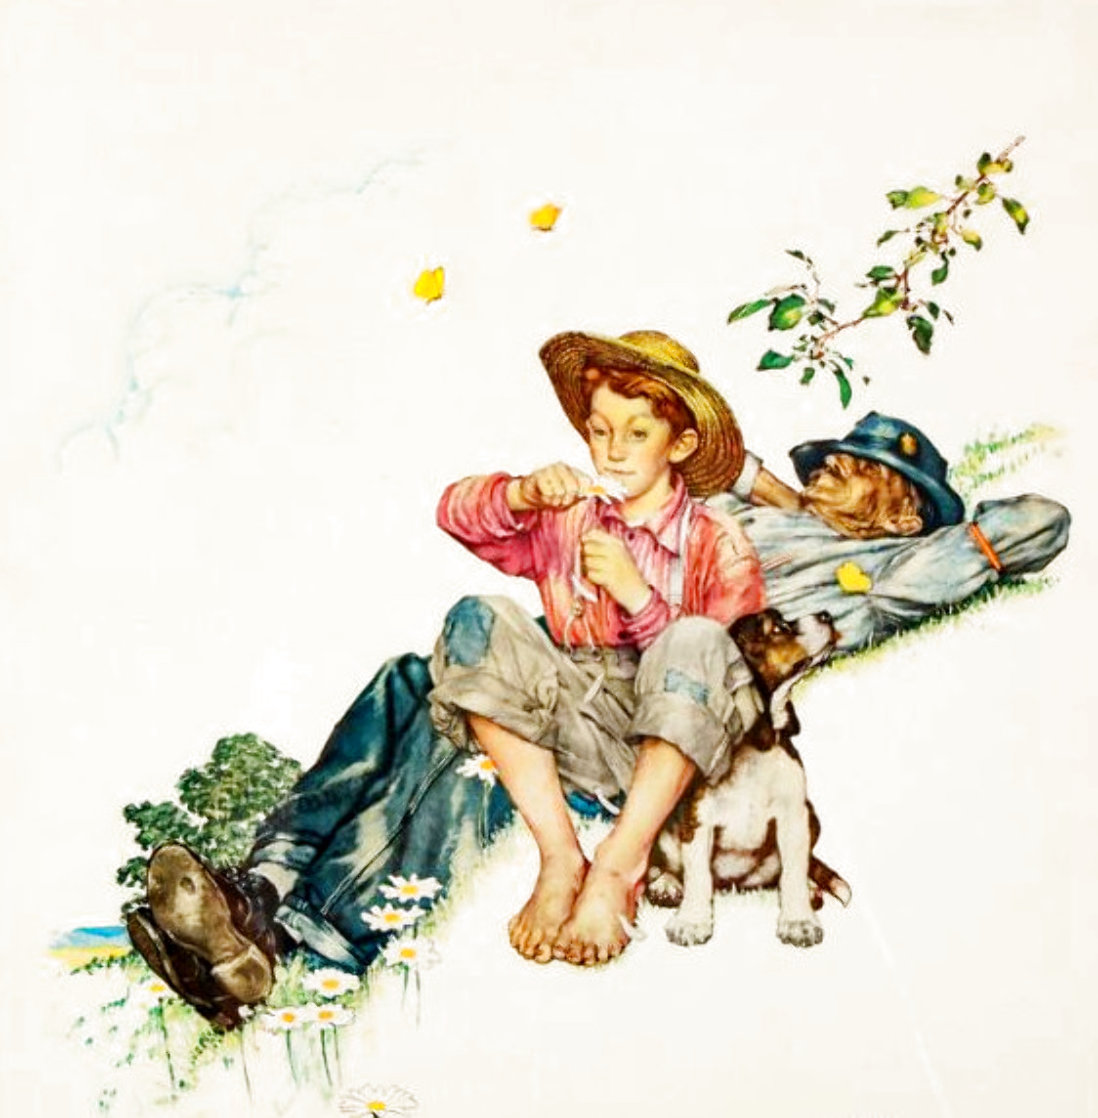 Grandpa and Me Suite: Picking Daisies AP 2012 Limited Edition Print by Norman Rockwell